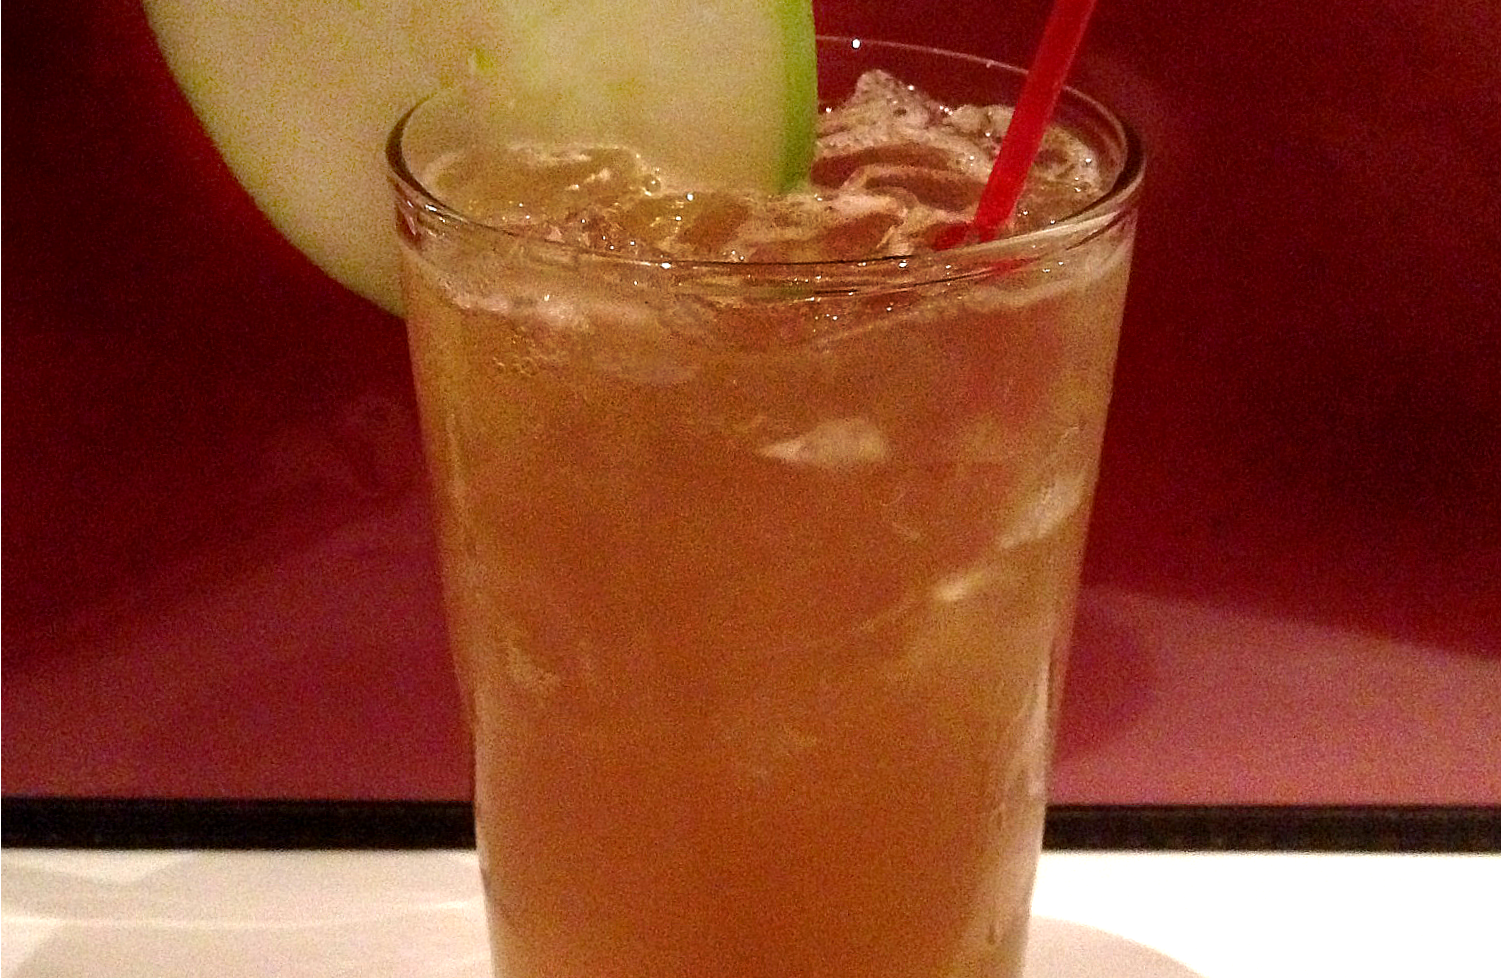 The Red Cat's Inspired Applejack Cocktail